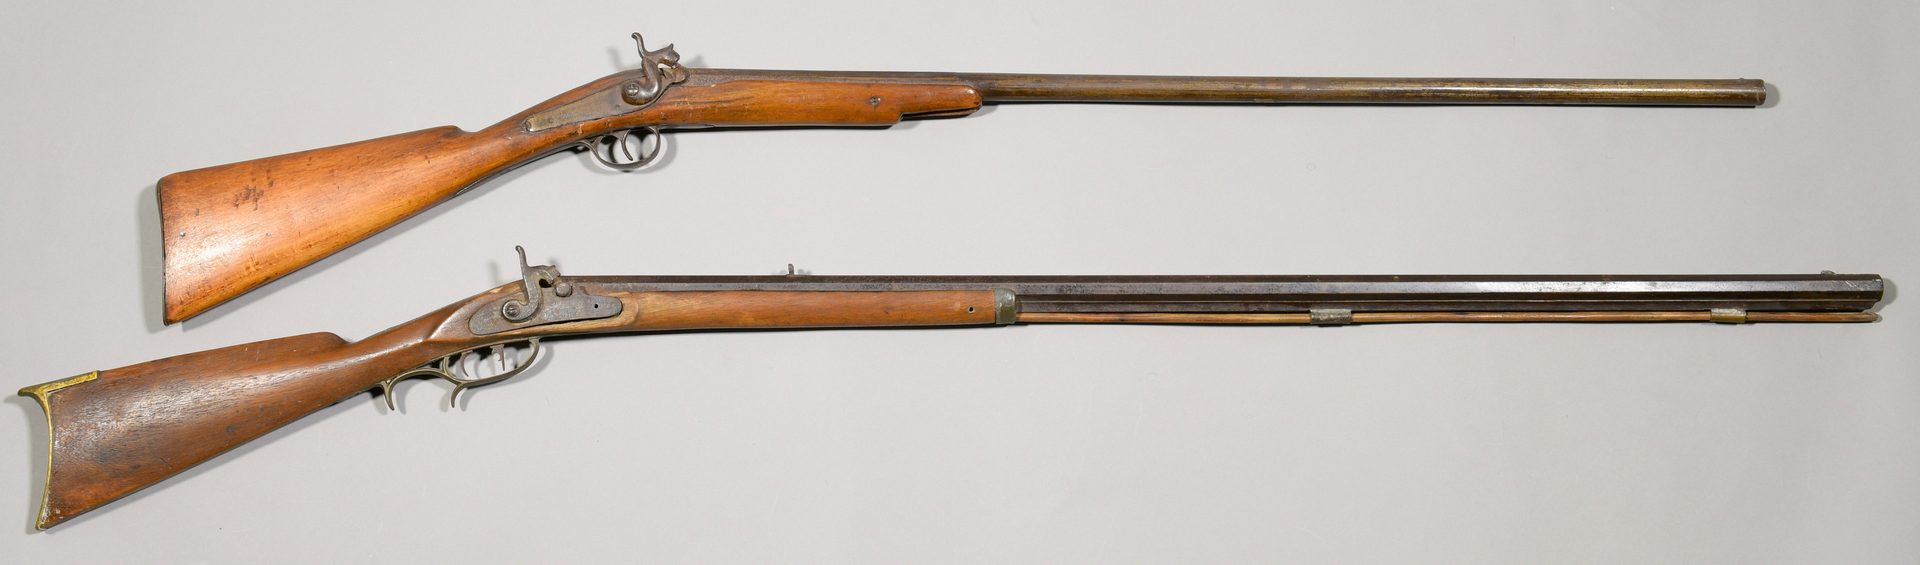 Lot 303: Kentucky Half Stock Rifle Marked Settle 1857 And Fowling Piece